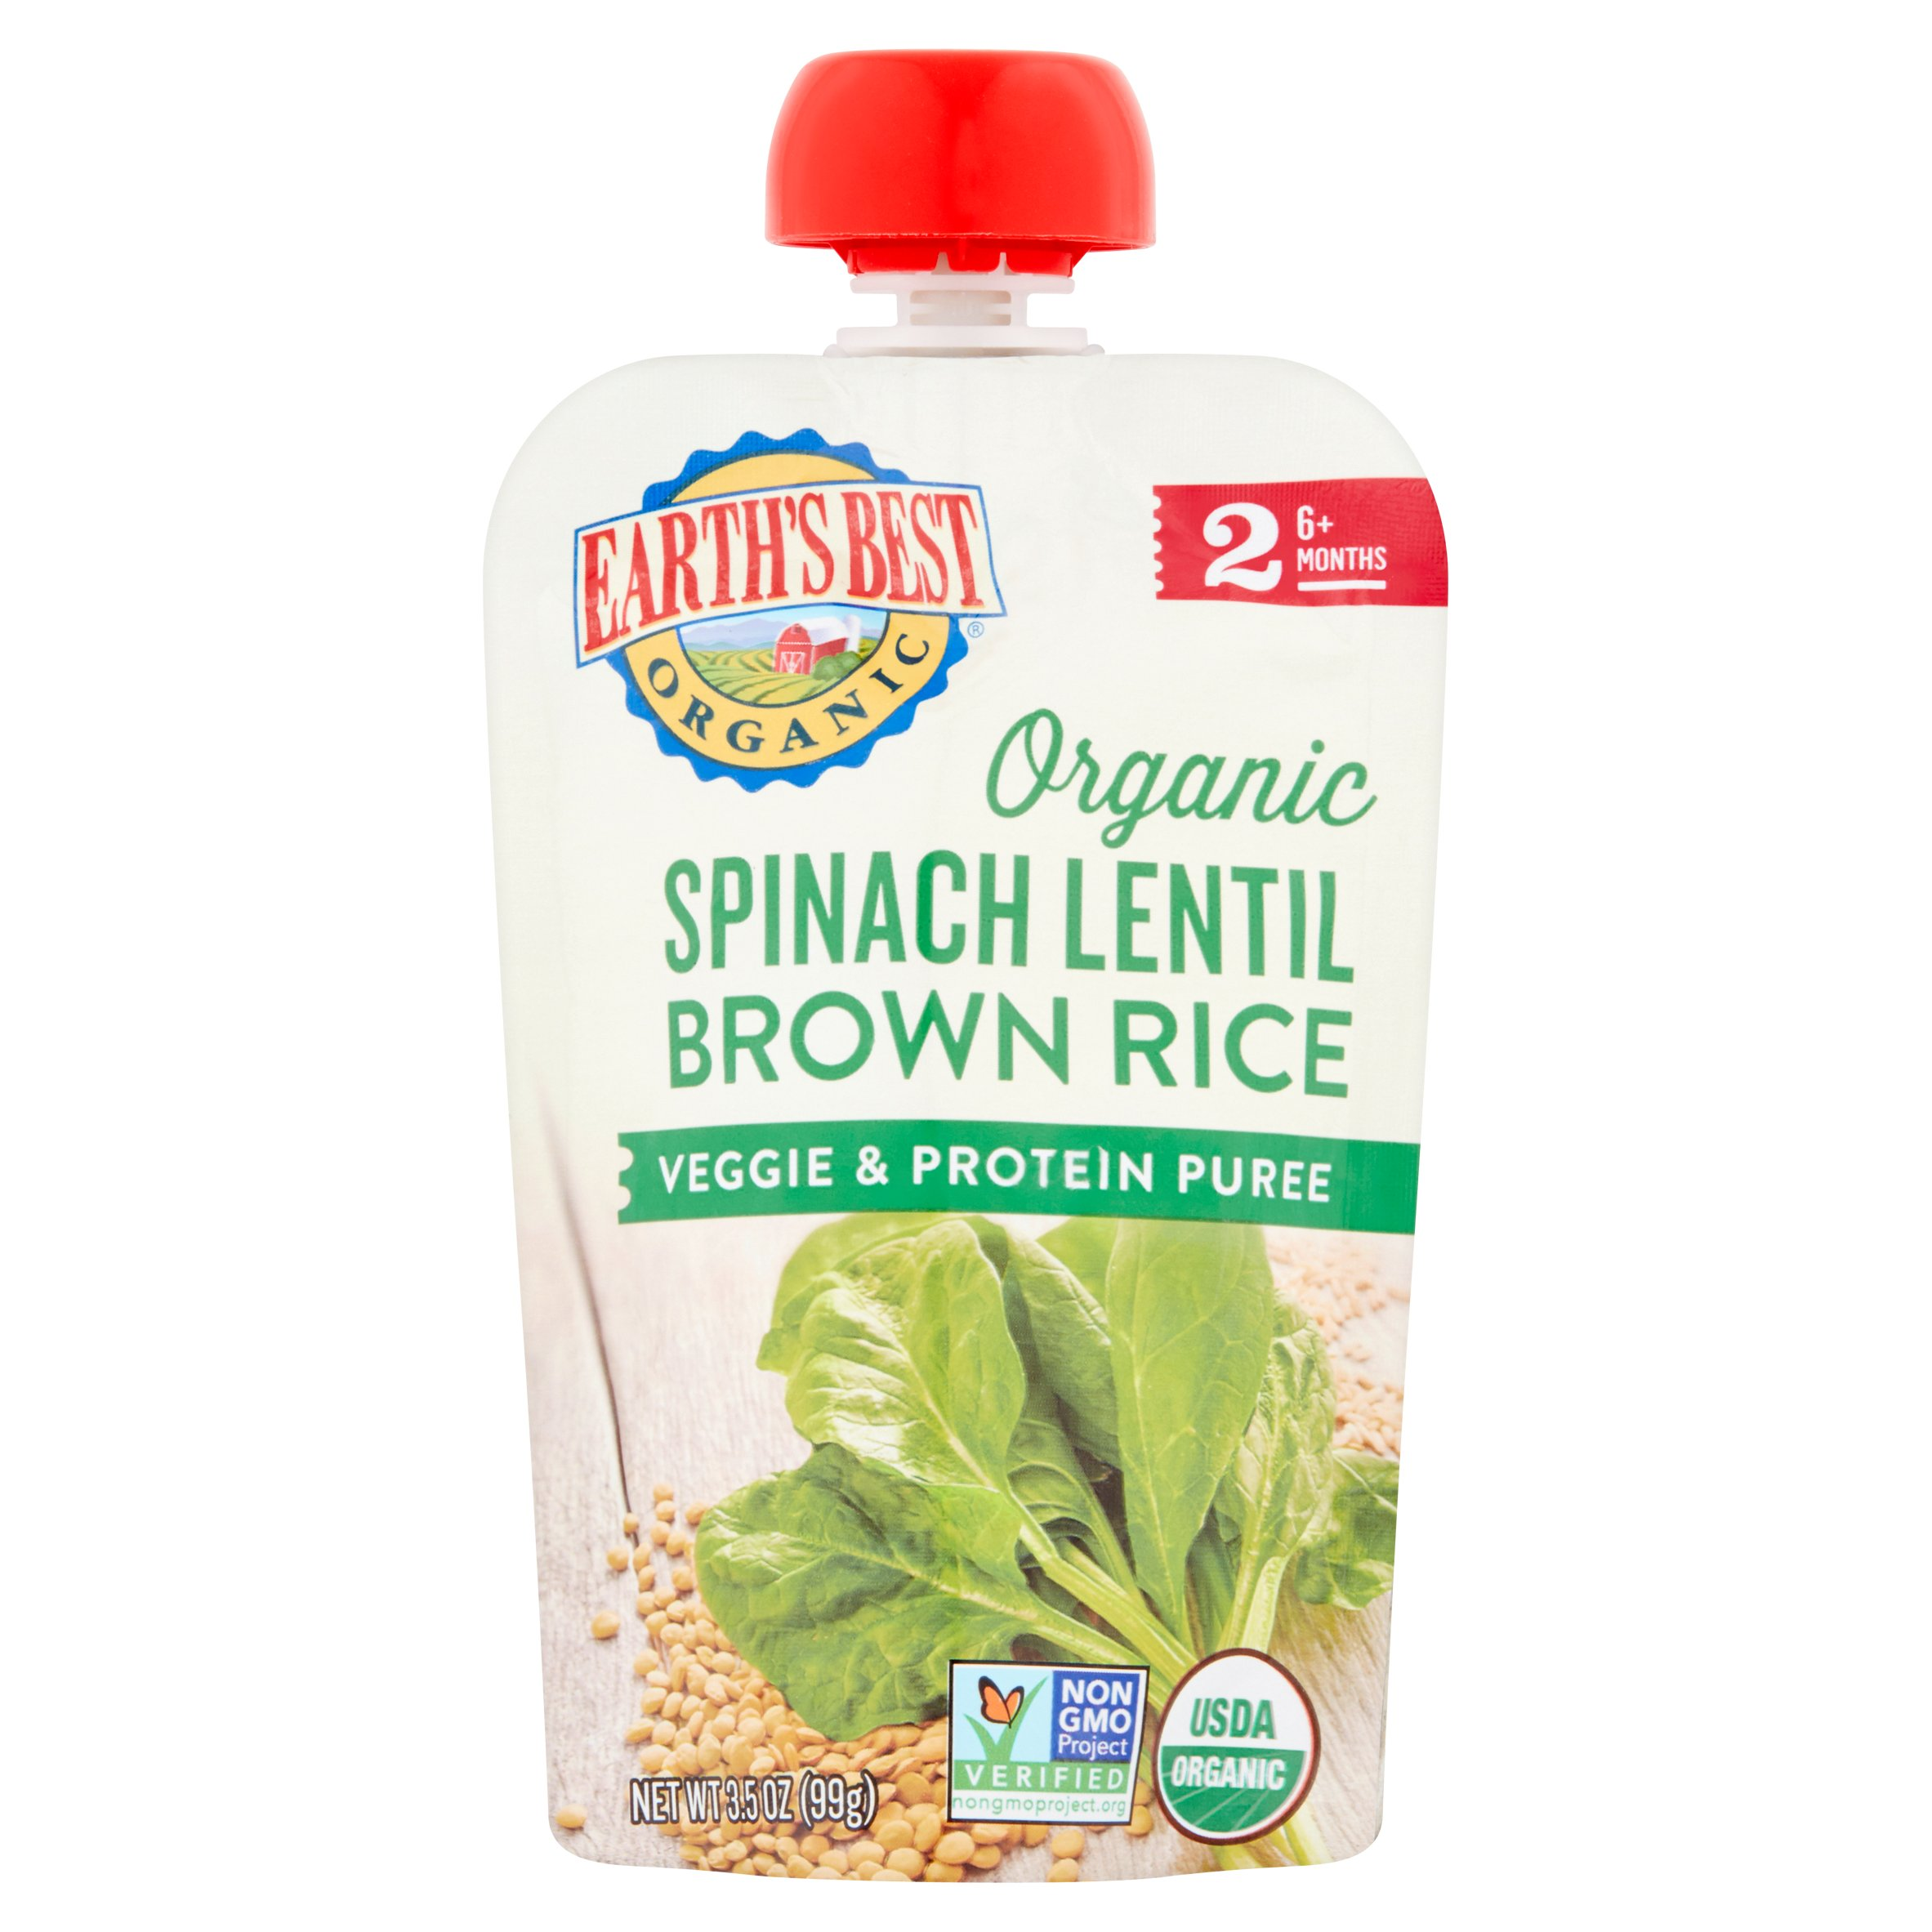 Earth's Best Organic Baby Food Spinach Lentil Brown Rice Veggie, 3.5 oz, 6 pack